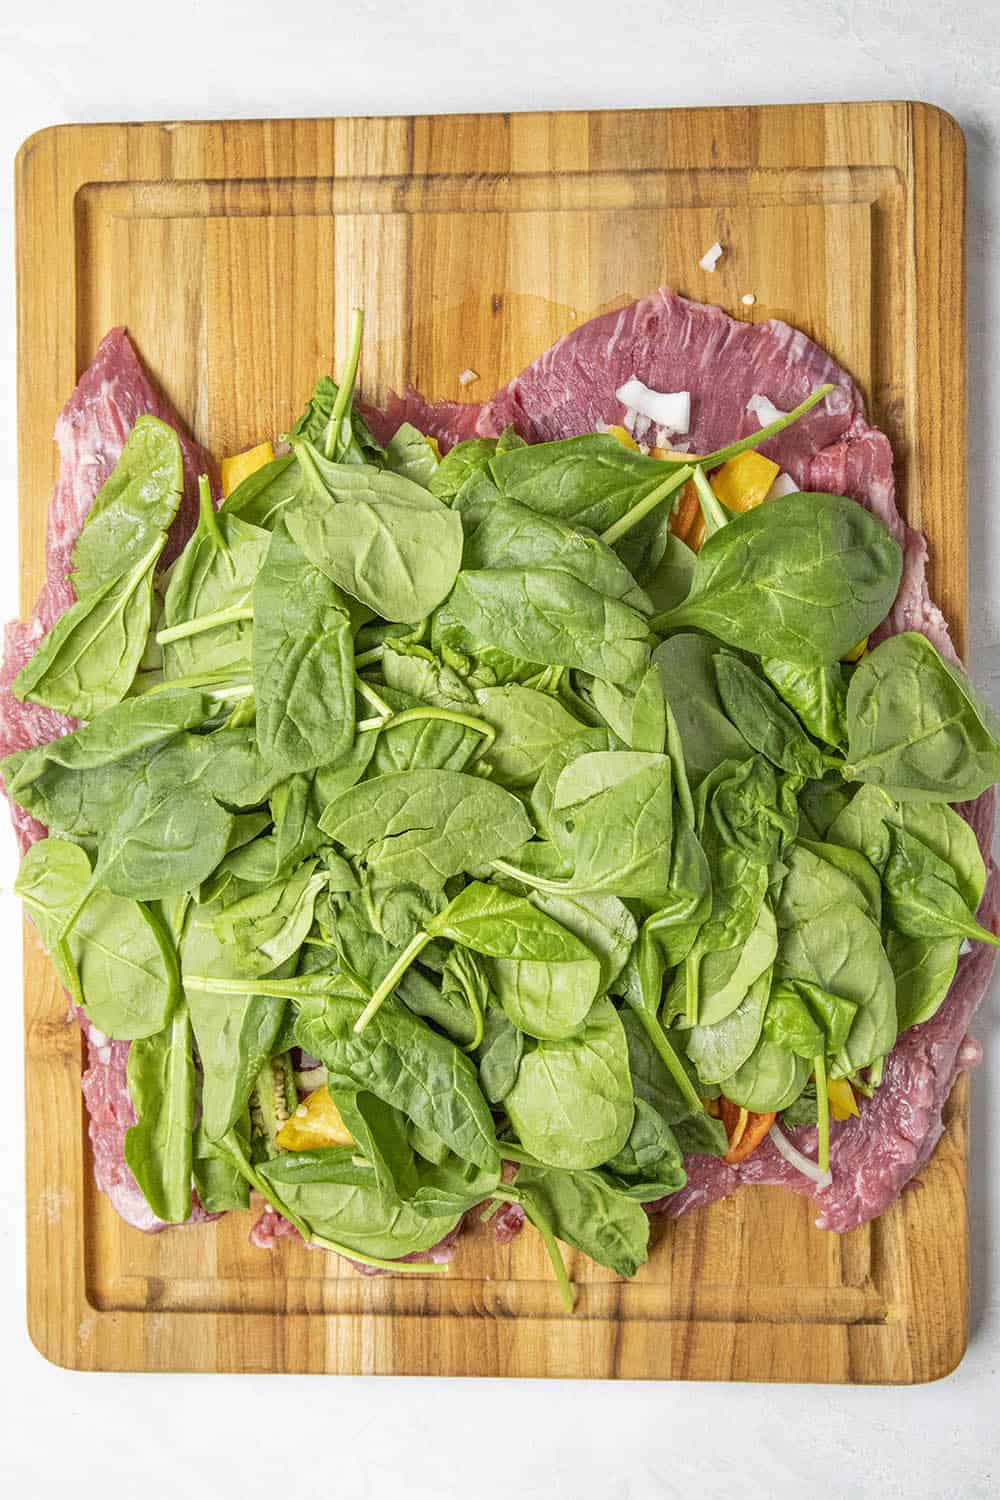 Adding spinach to the flank steak